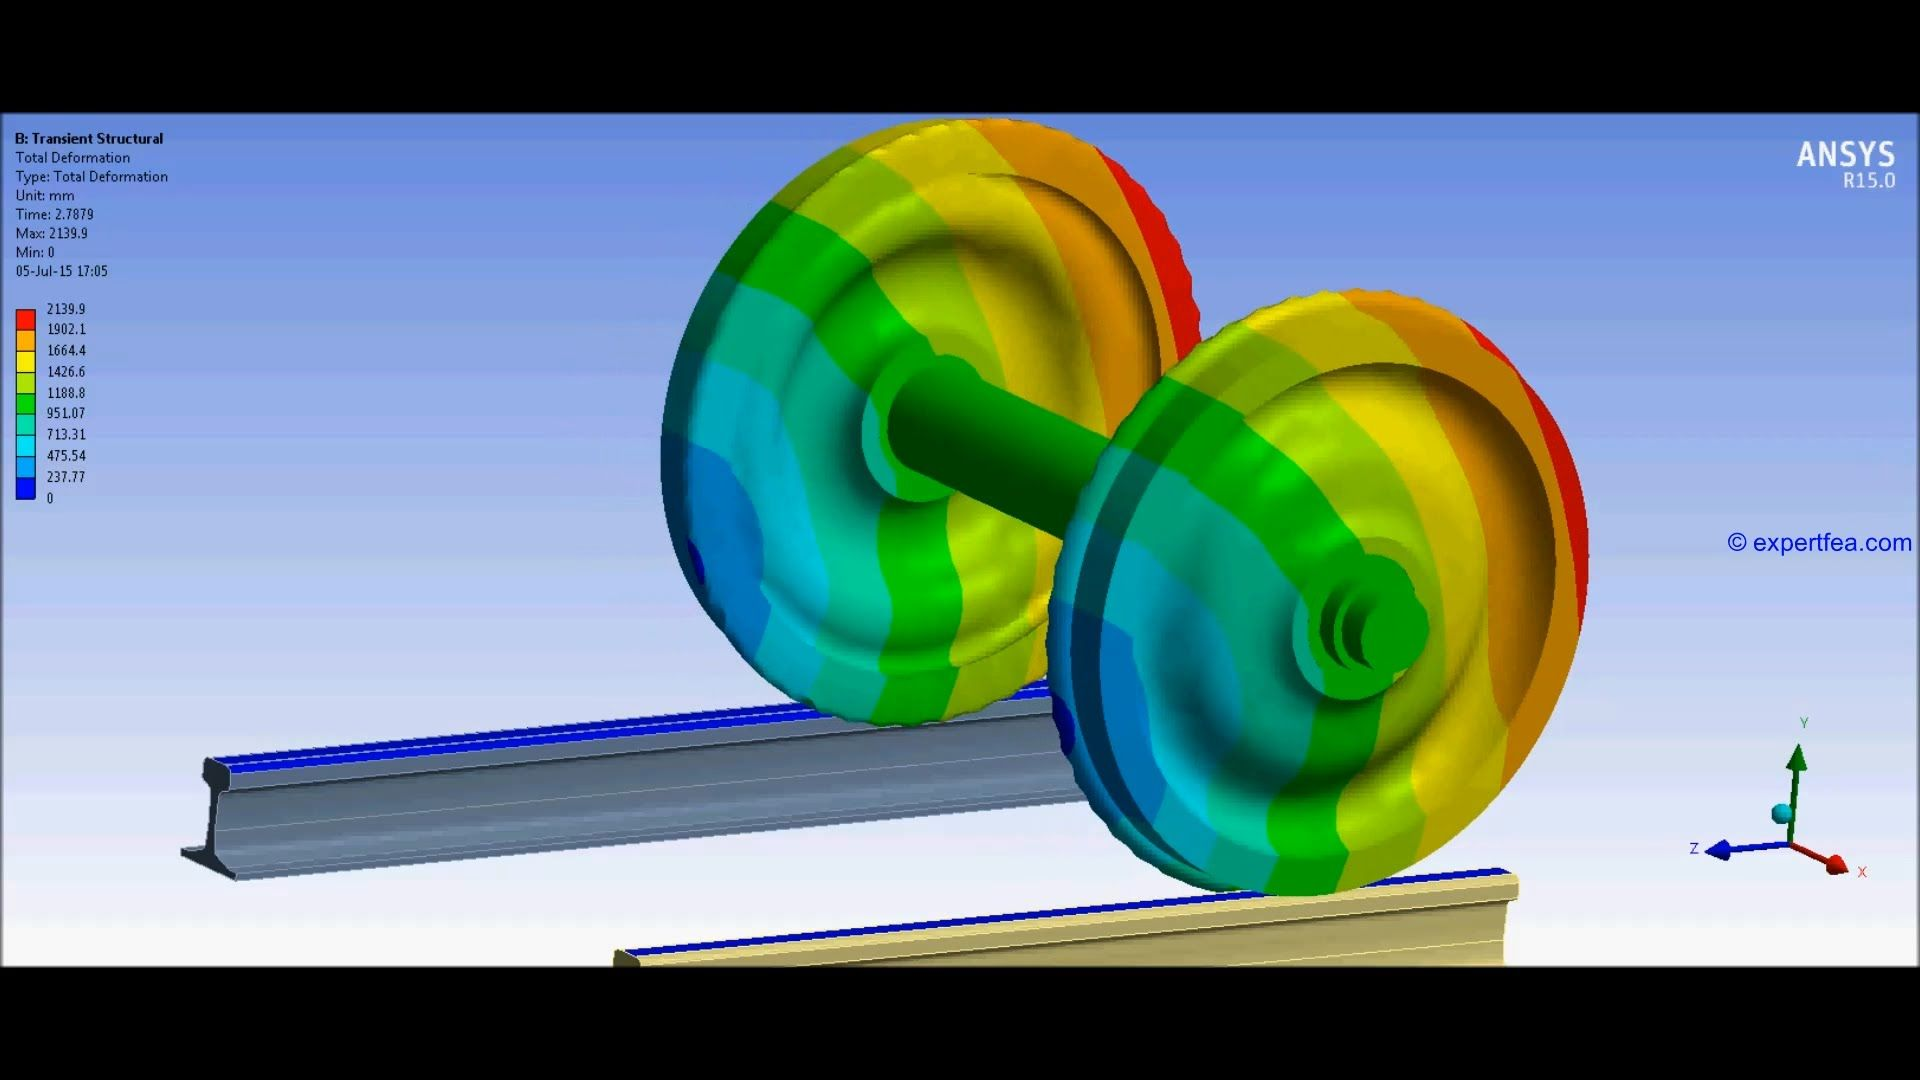 ANSYS Workbench Transient Structural FEA of the rotating